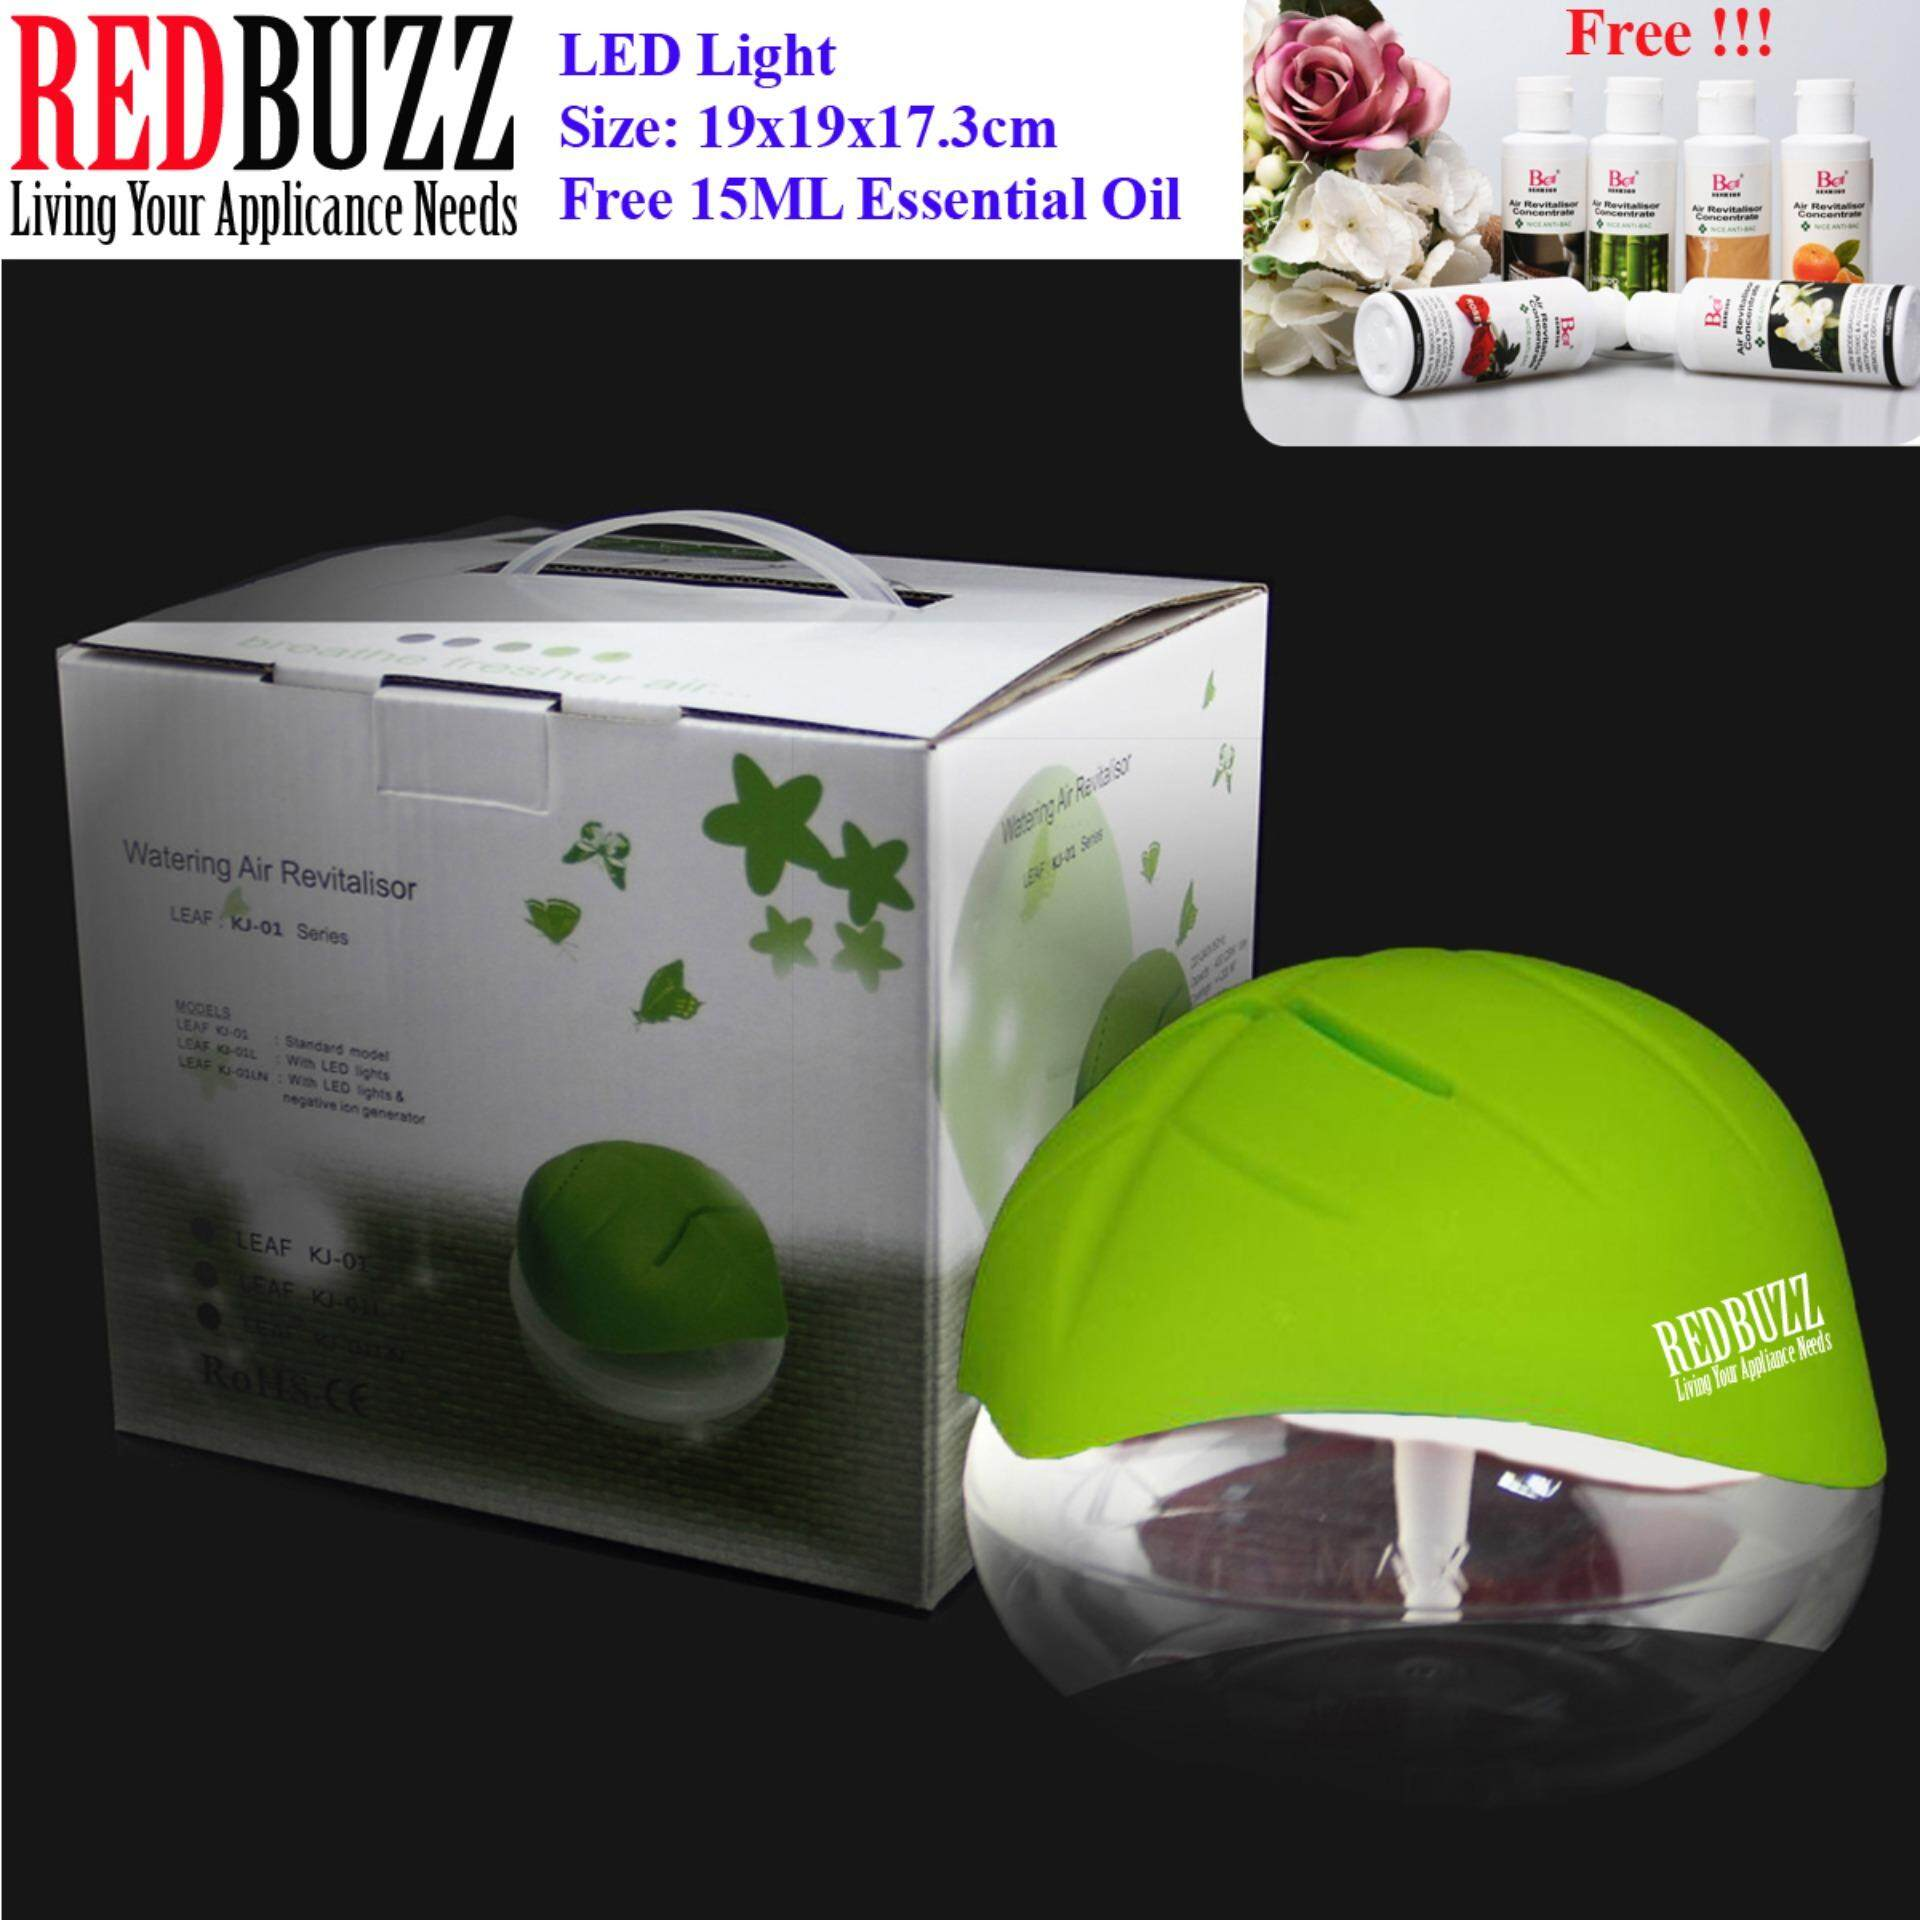 Redbuzz Watering Air Revitalisor Fresh Purifiers (green) With Led Light + Free 15ml Essential Oil By Redbuzz.